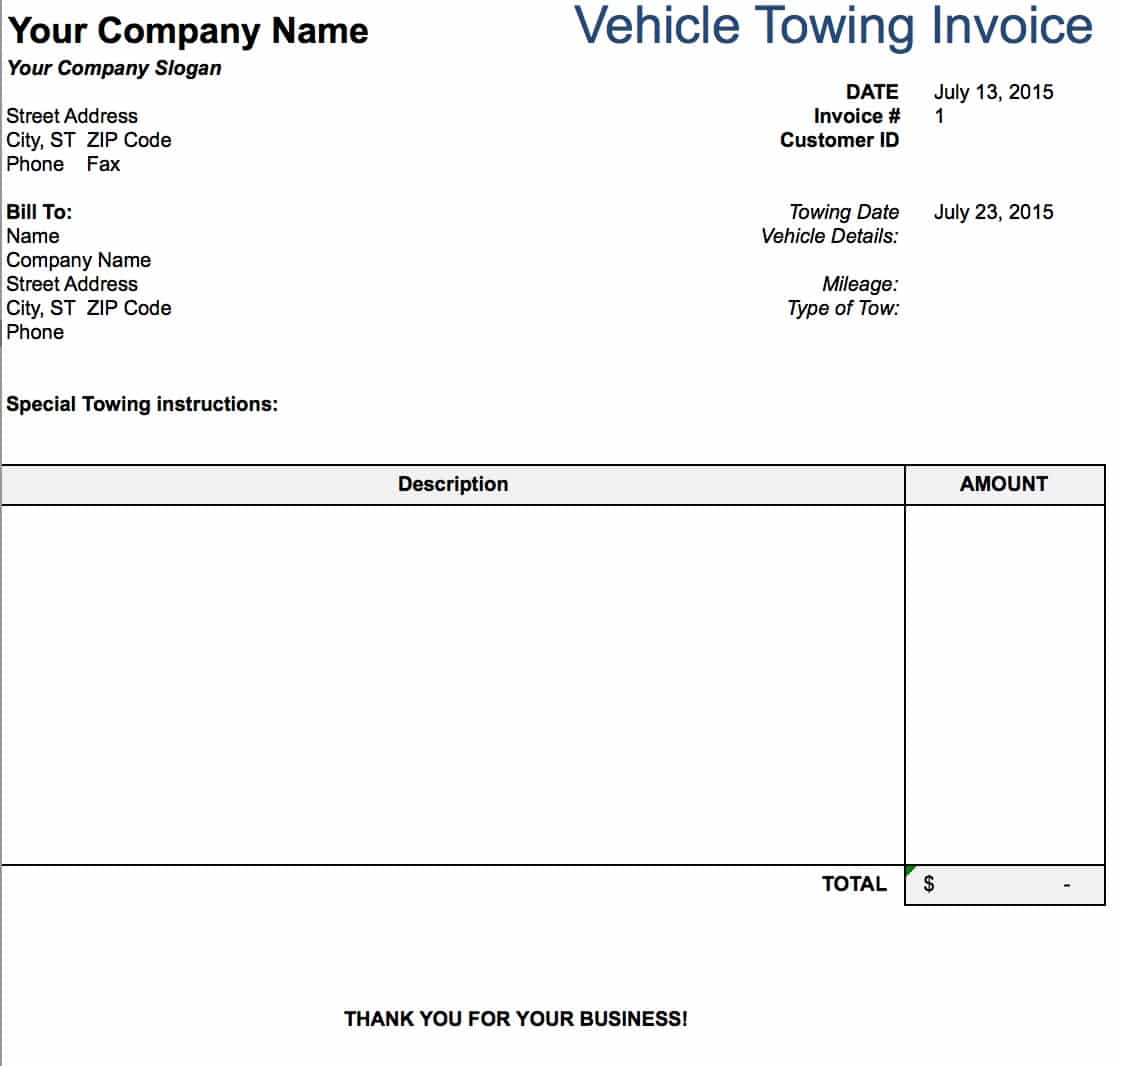 Free Tow Service Invoice Template Excel PDF Word Doc - Create free invoice template for service business